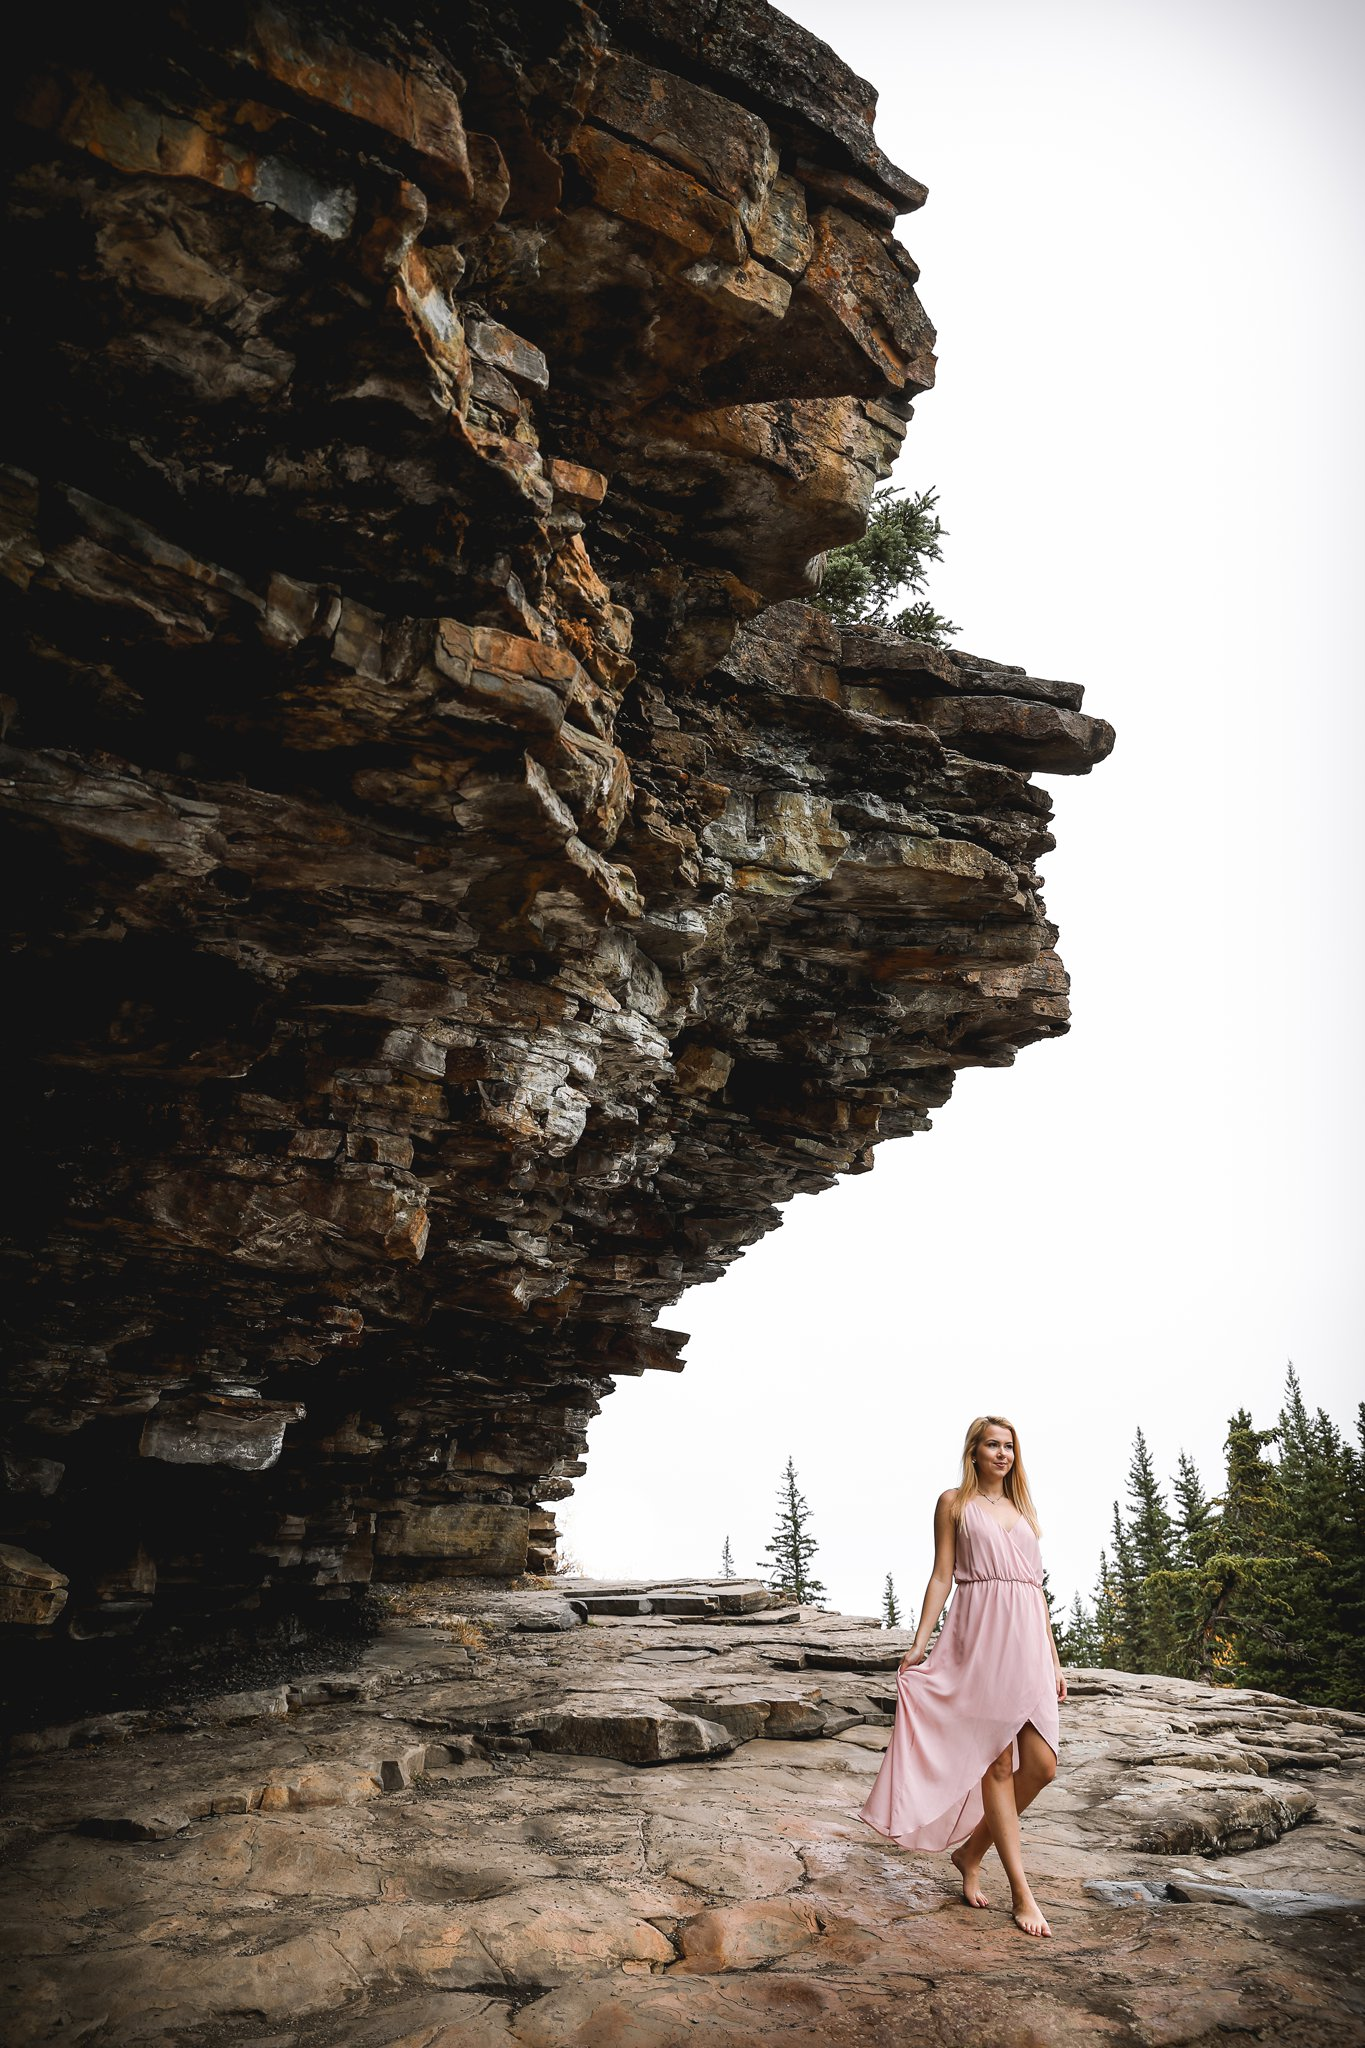 AshleyDaphnePhotography Calgary Photographer Wedding Family Senior Portraits Rocky Mountains Sheep River Falls Autumn Fall_0022.jpg